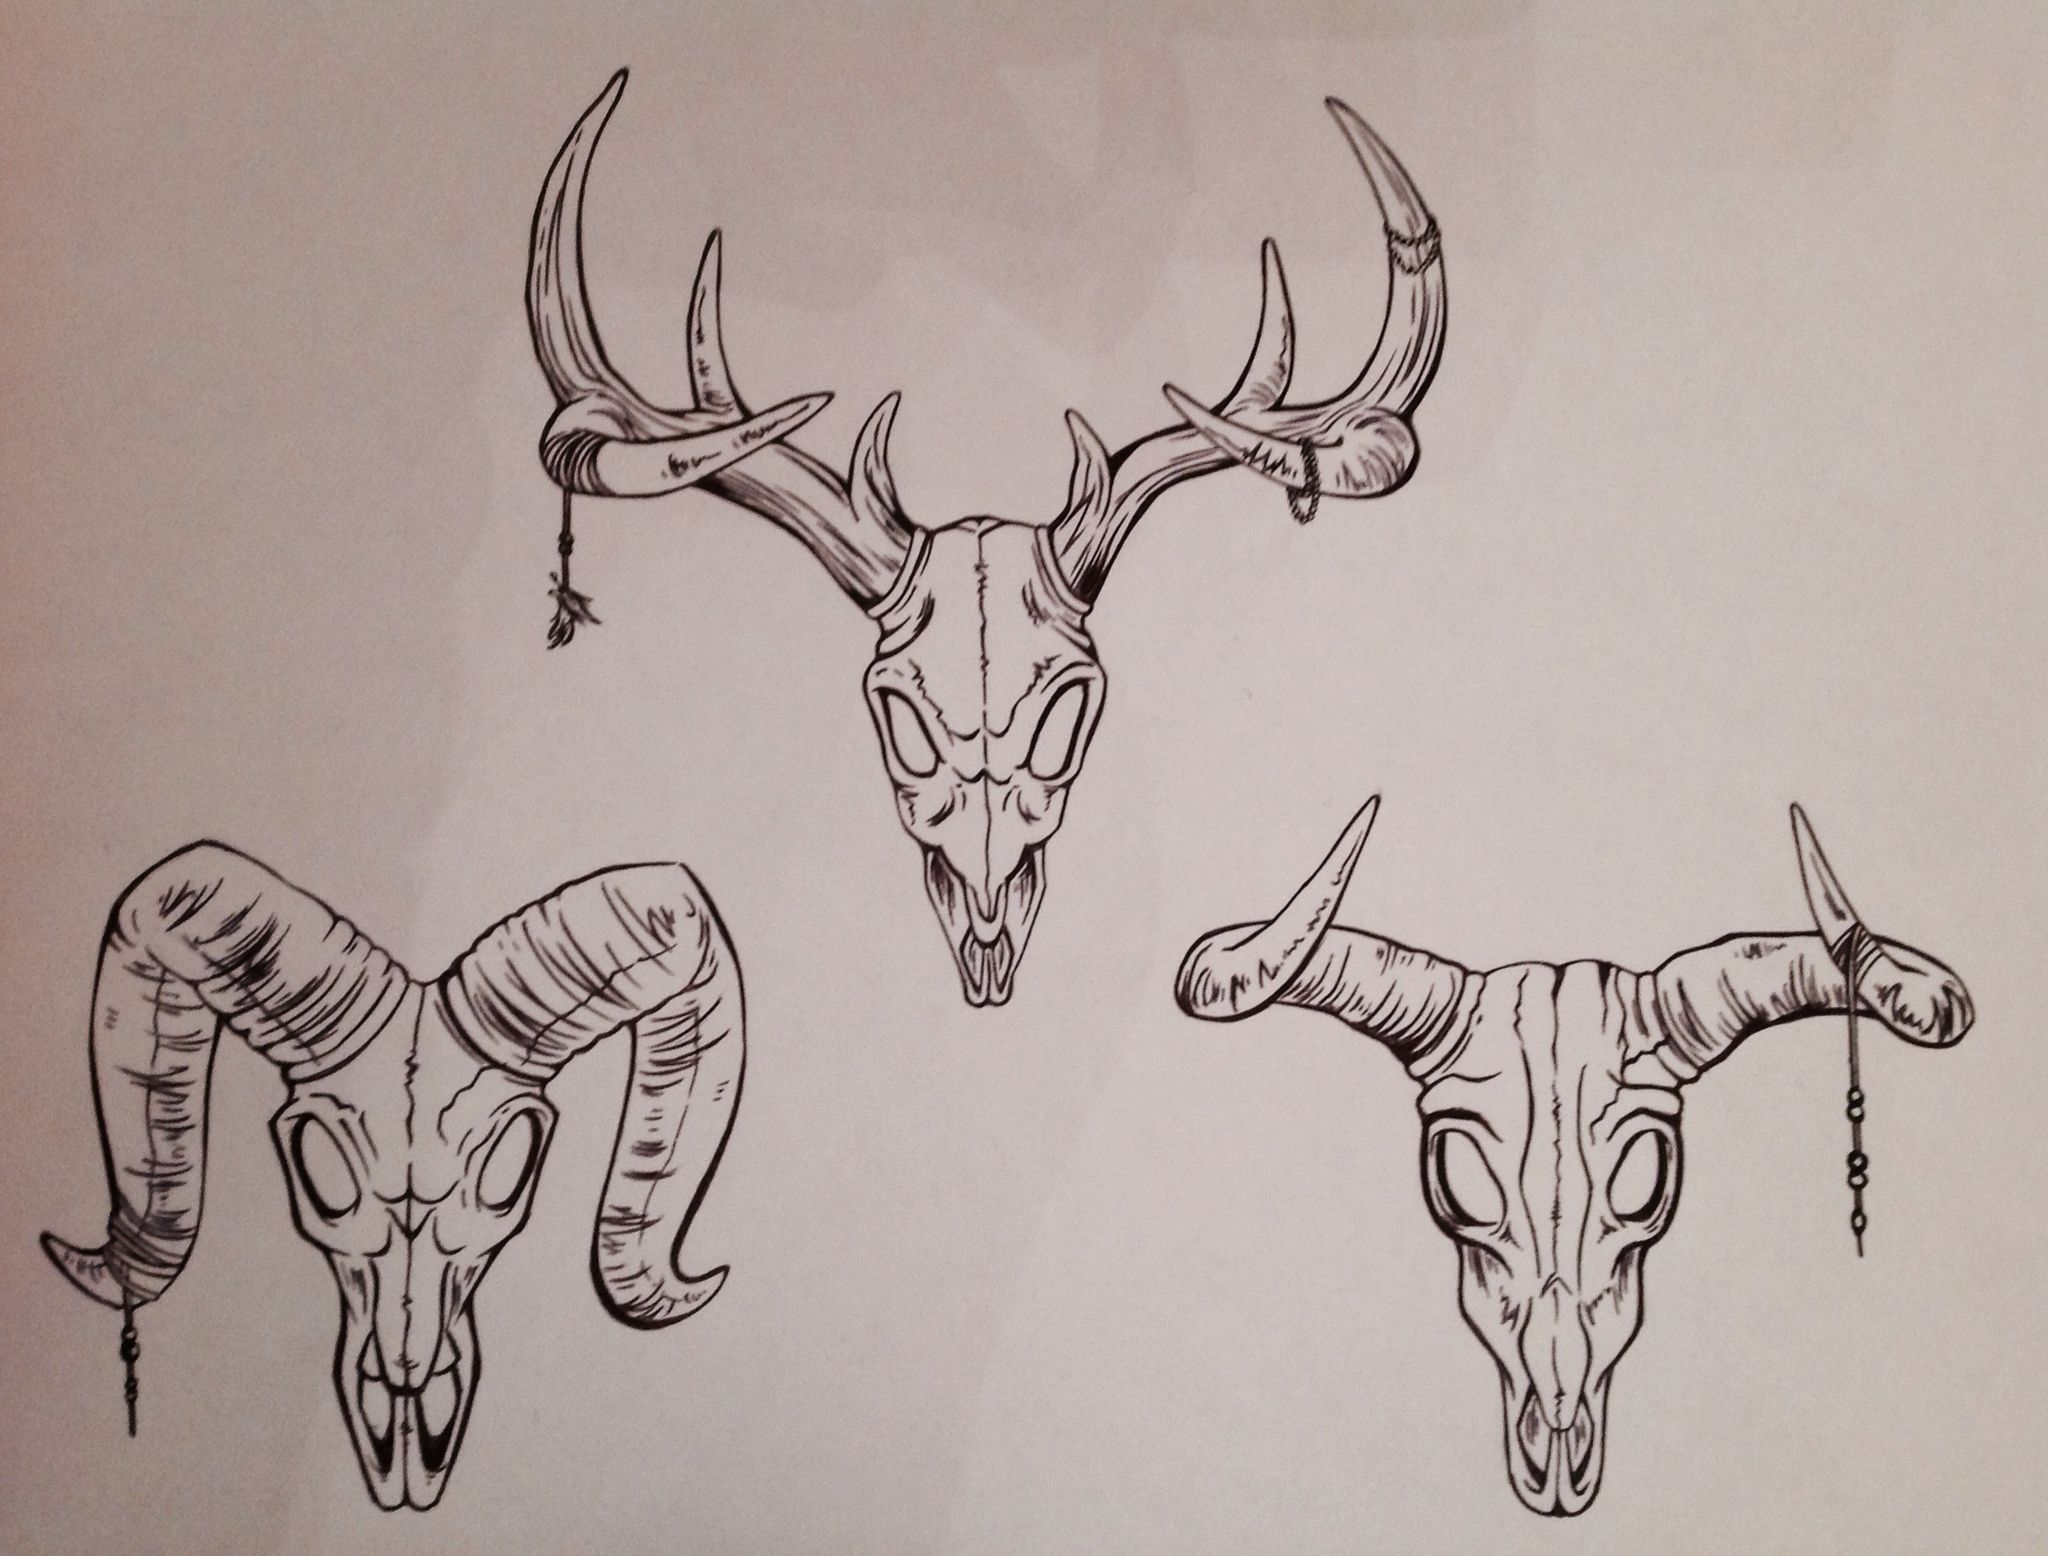 2048x1556 Biro Drawings Sheep Skull Cow Skull Deer Skull Inks